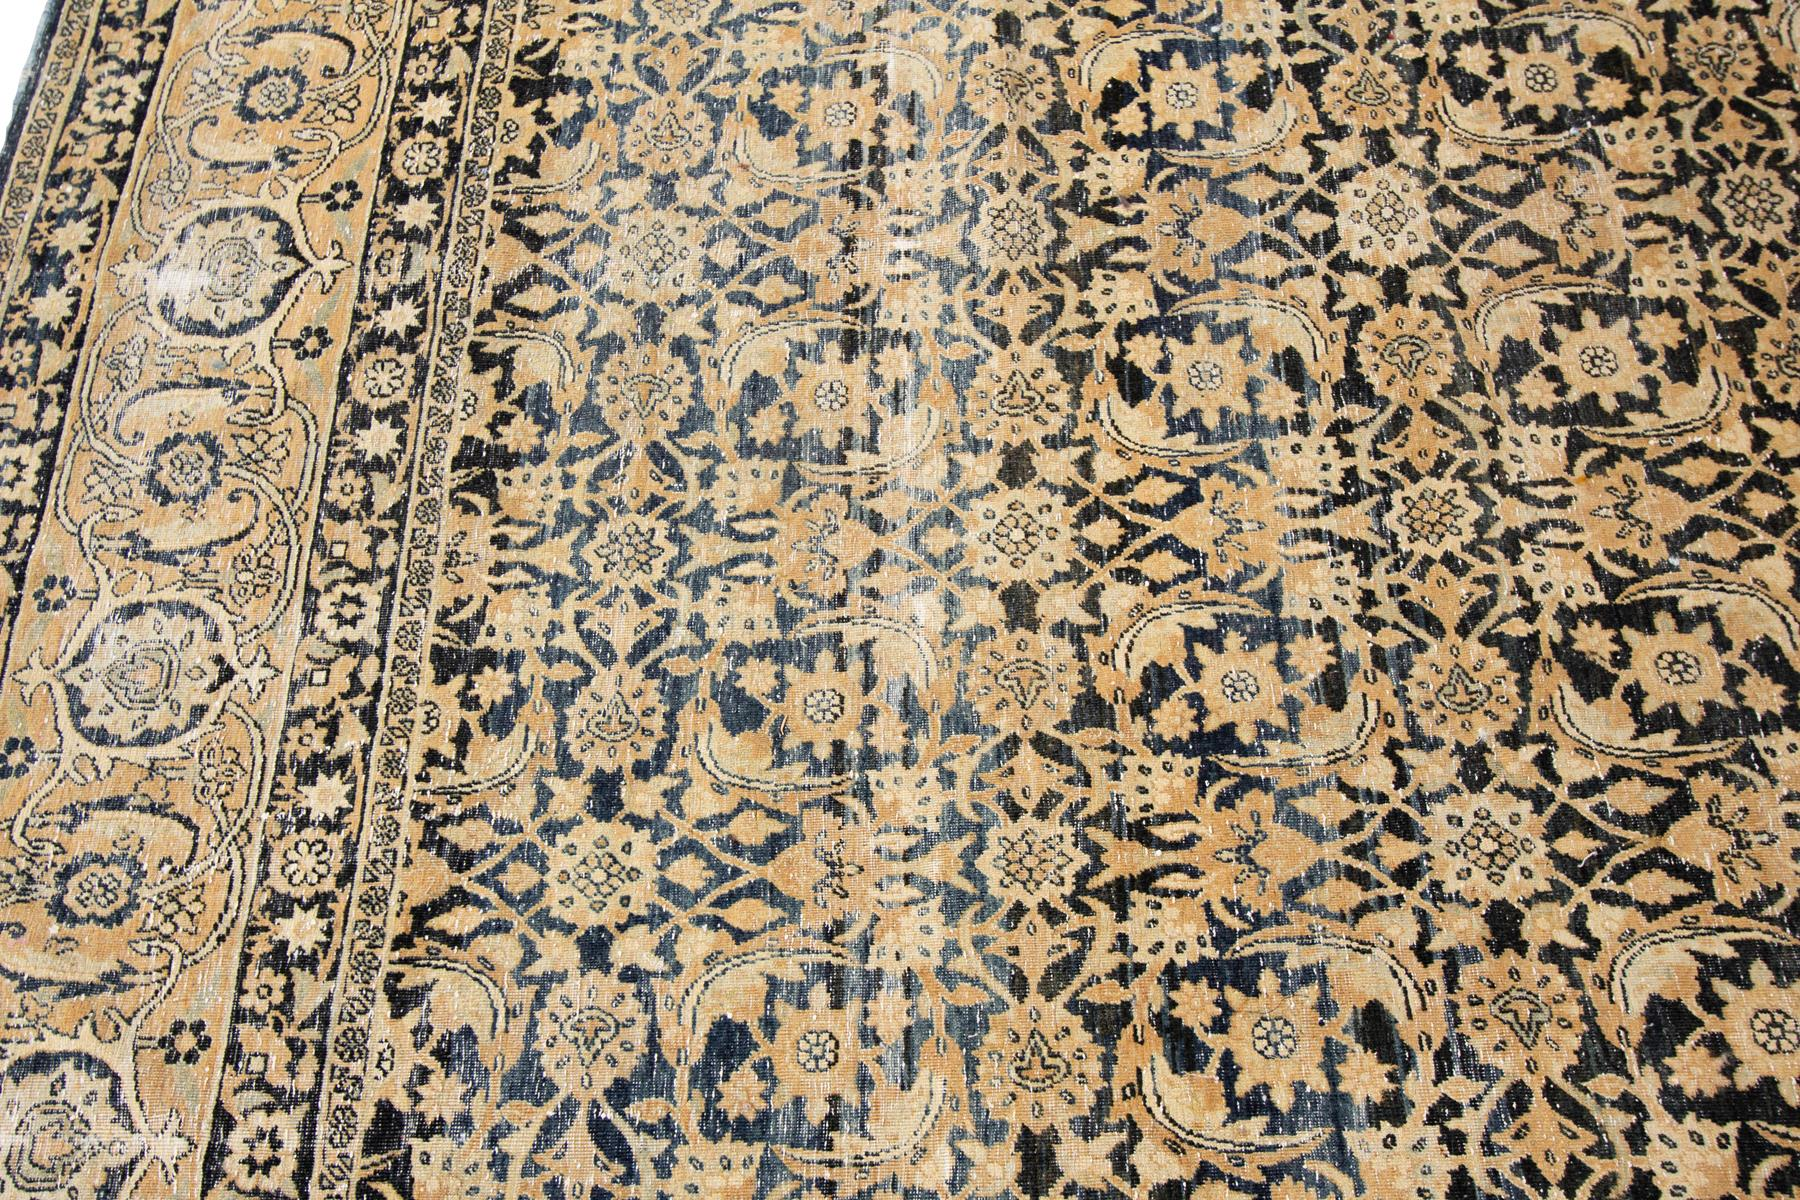 Antique Tabriz Rug, 10X14